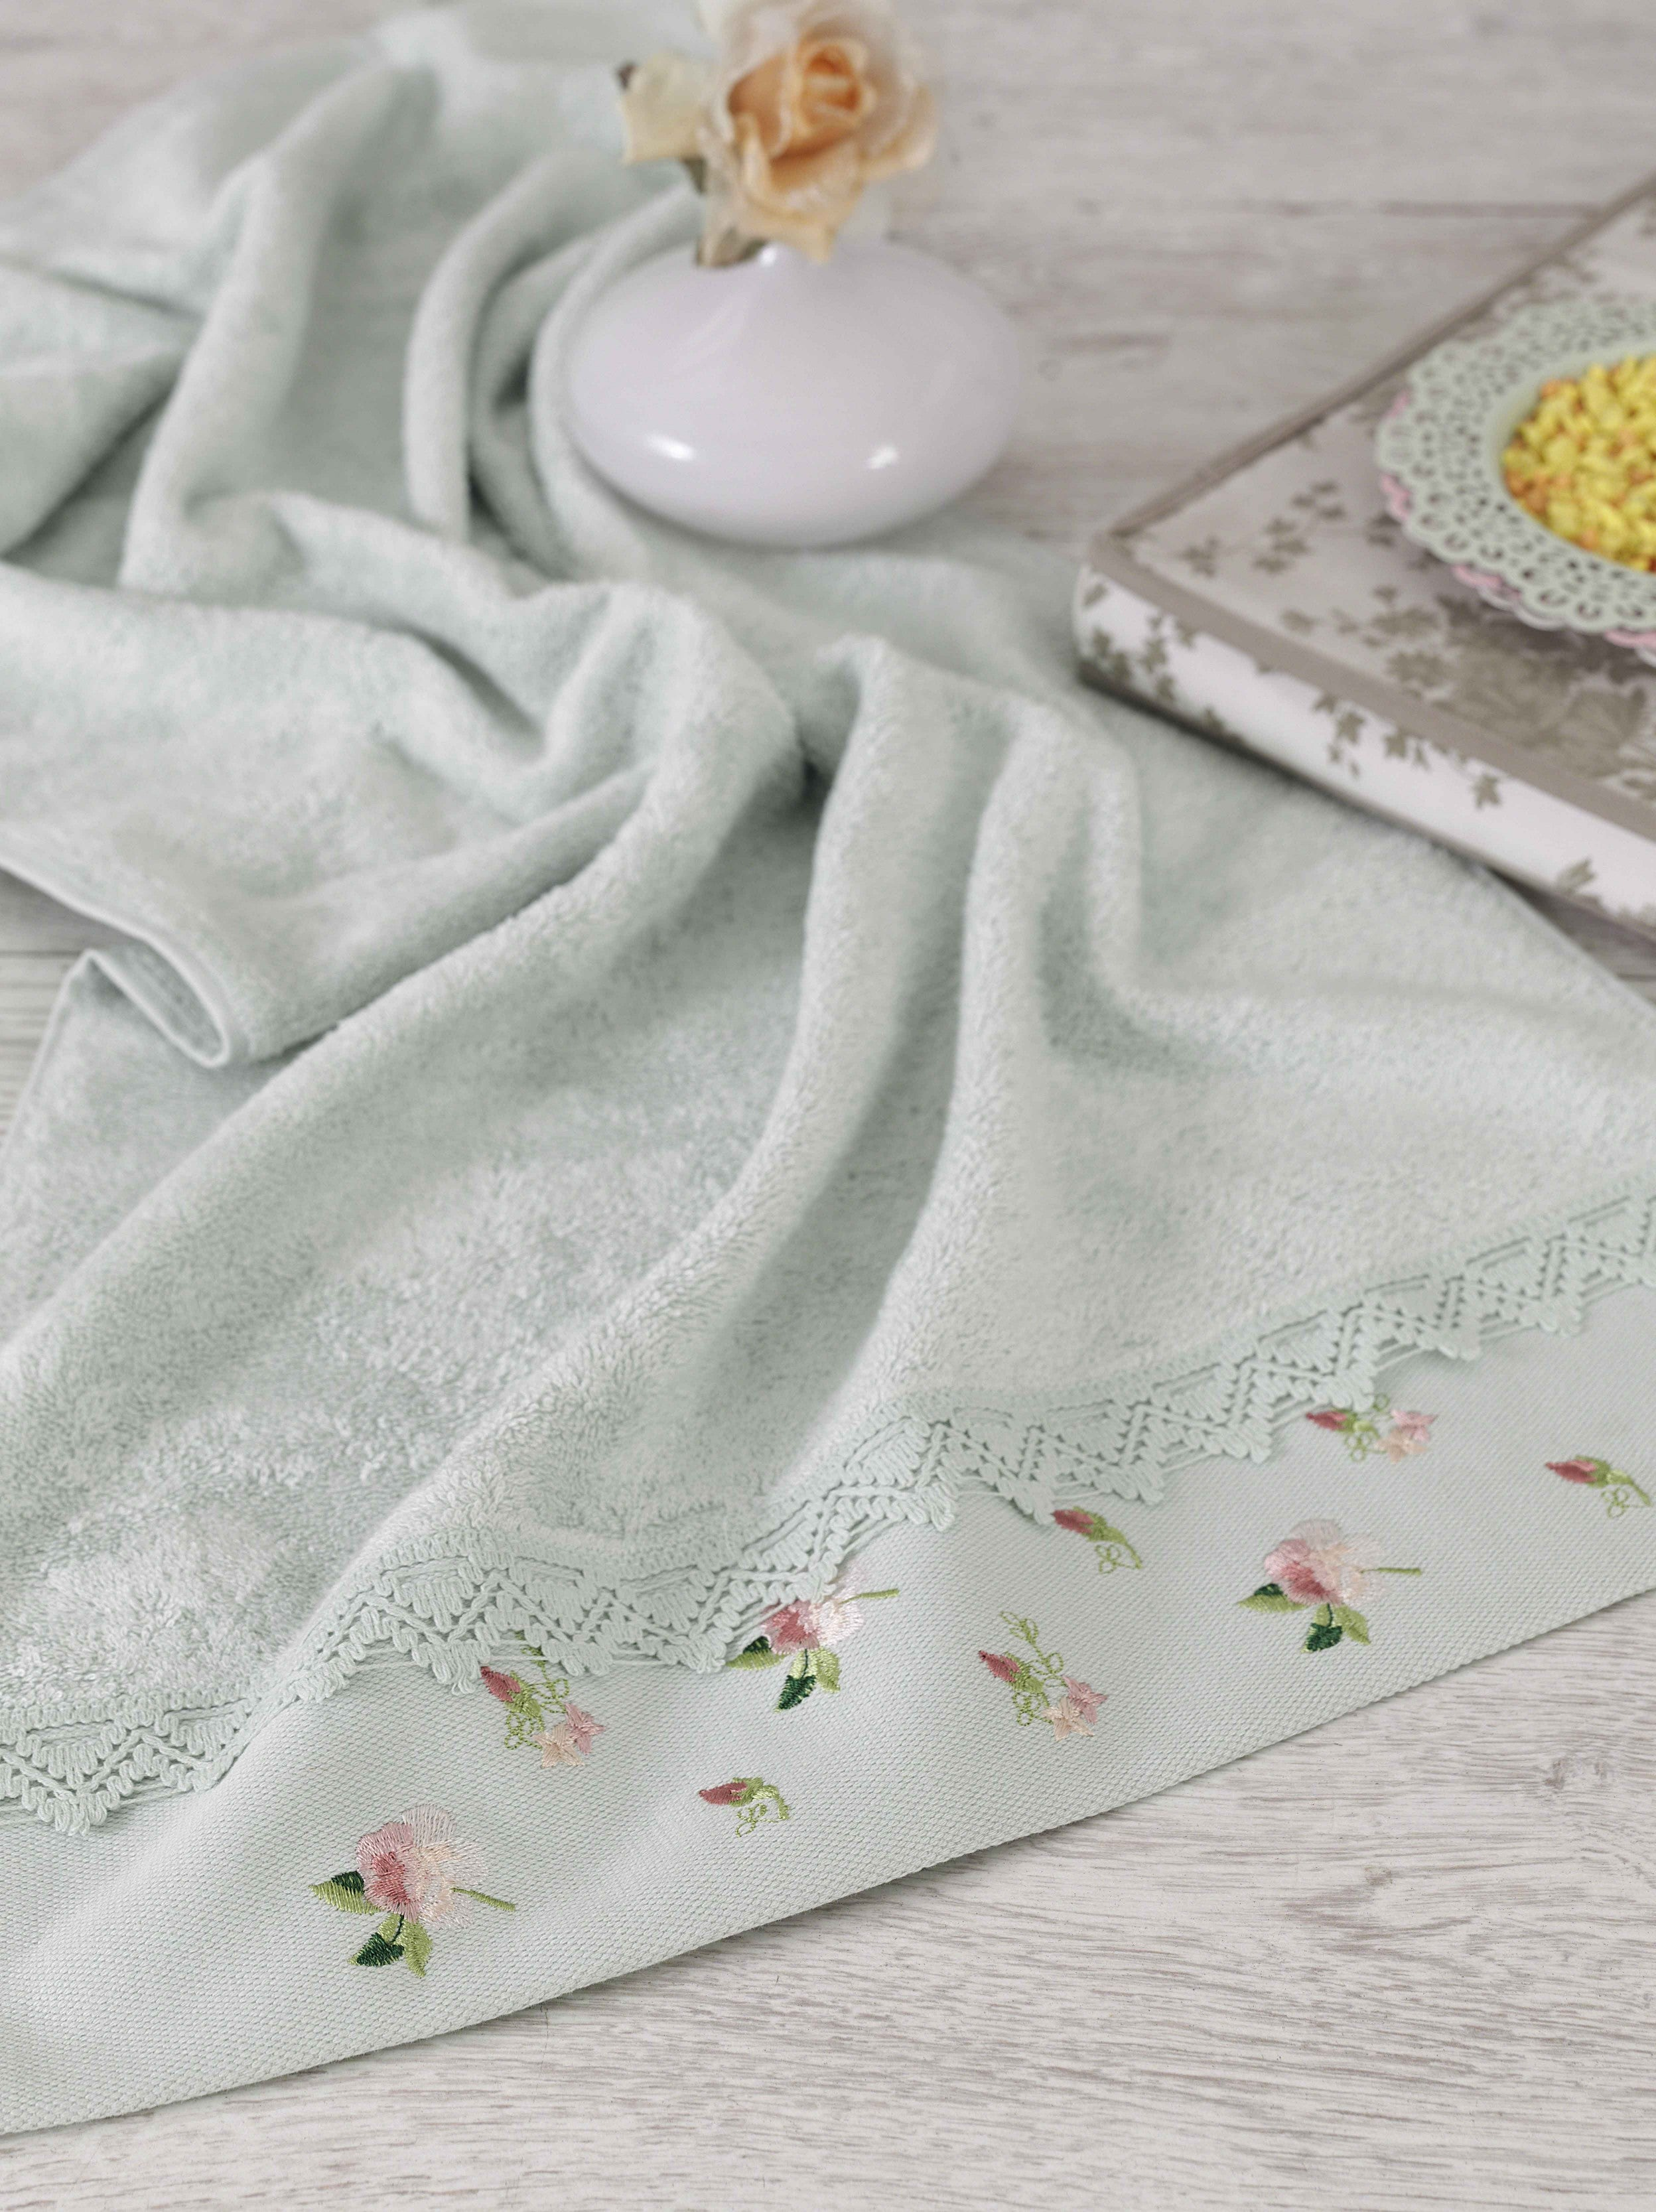 TURKISH EMBROIDERIED WITH LACE BAMBOO TOWEL IN 6 COLORS - COTTONISH